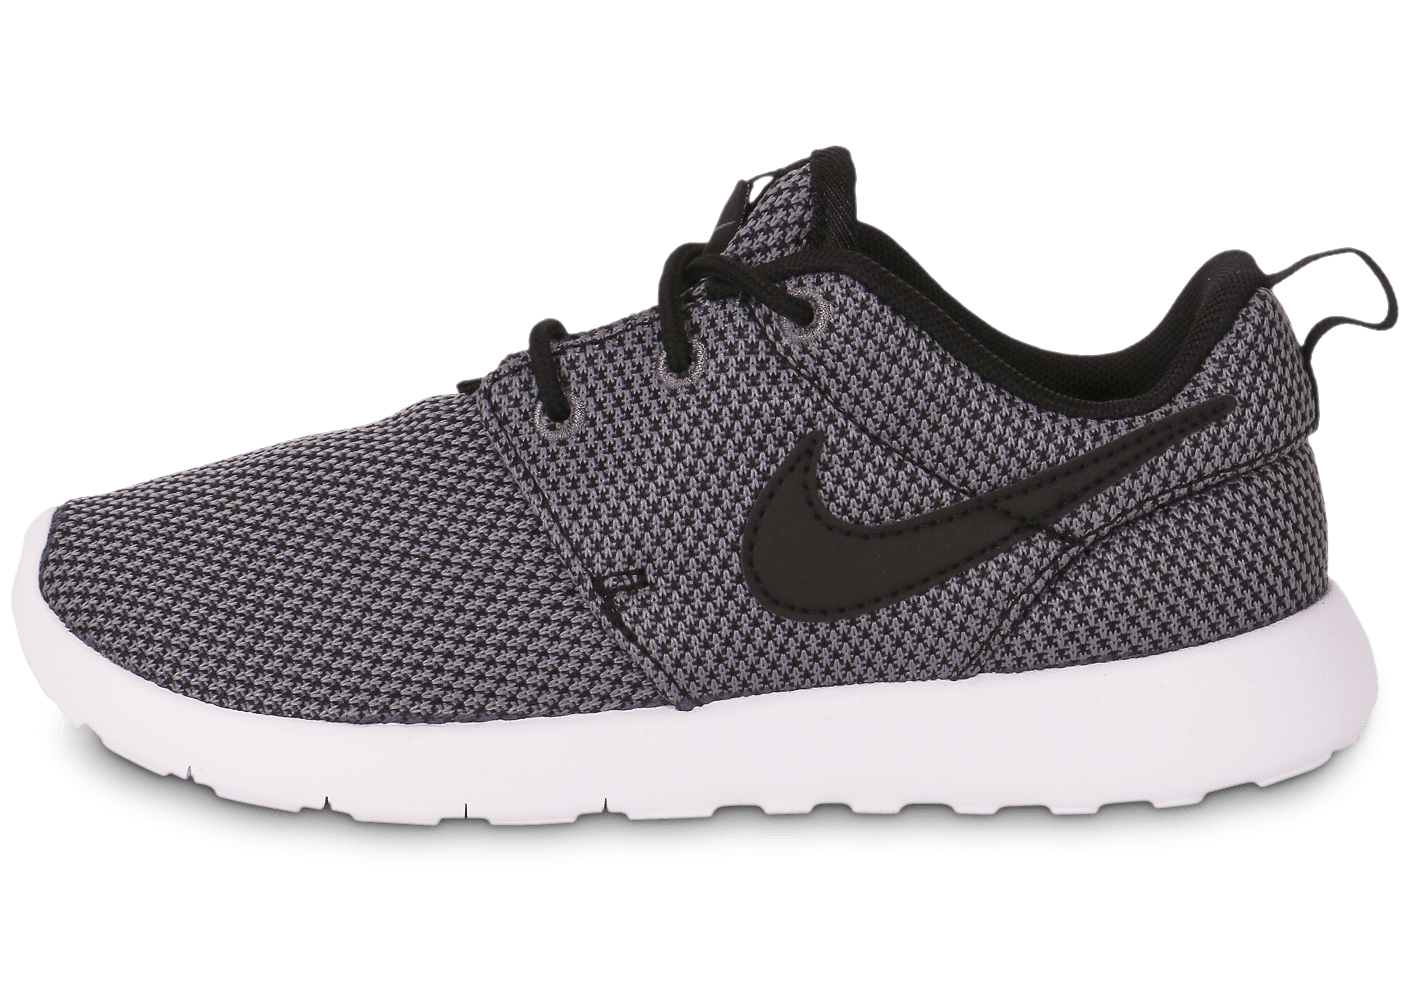 low priced e91f3 4fdfa Nike Roshe One Enfant Grise - Chaussures Chaussures - Chausport